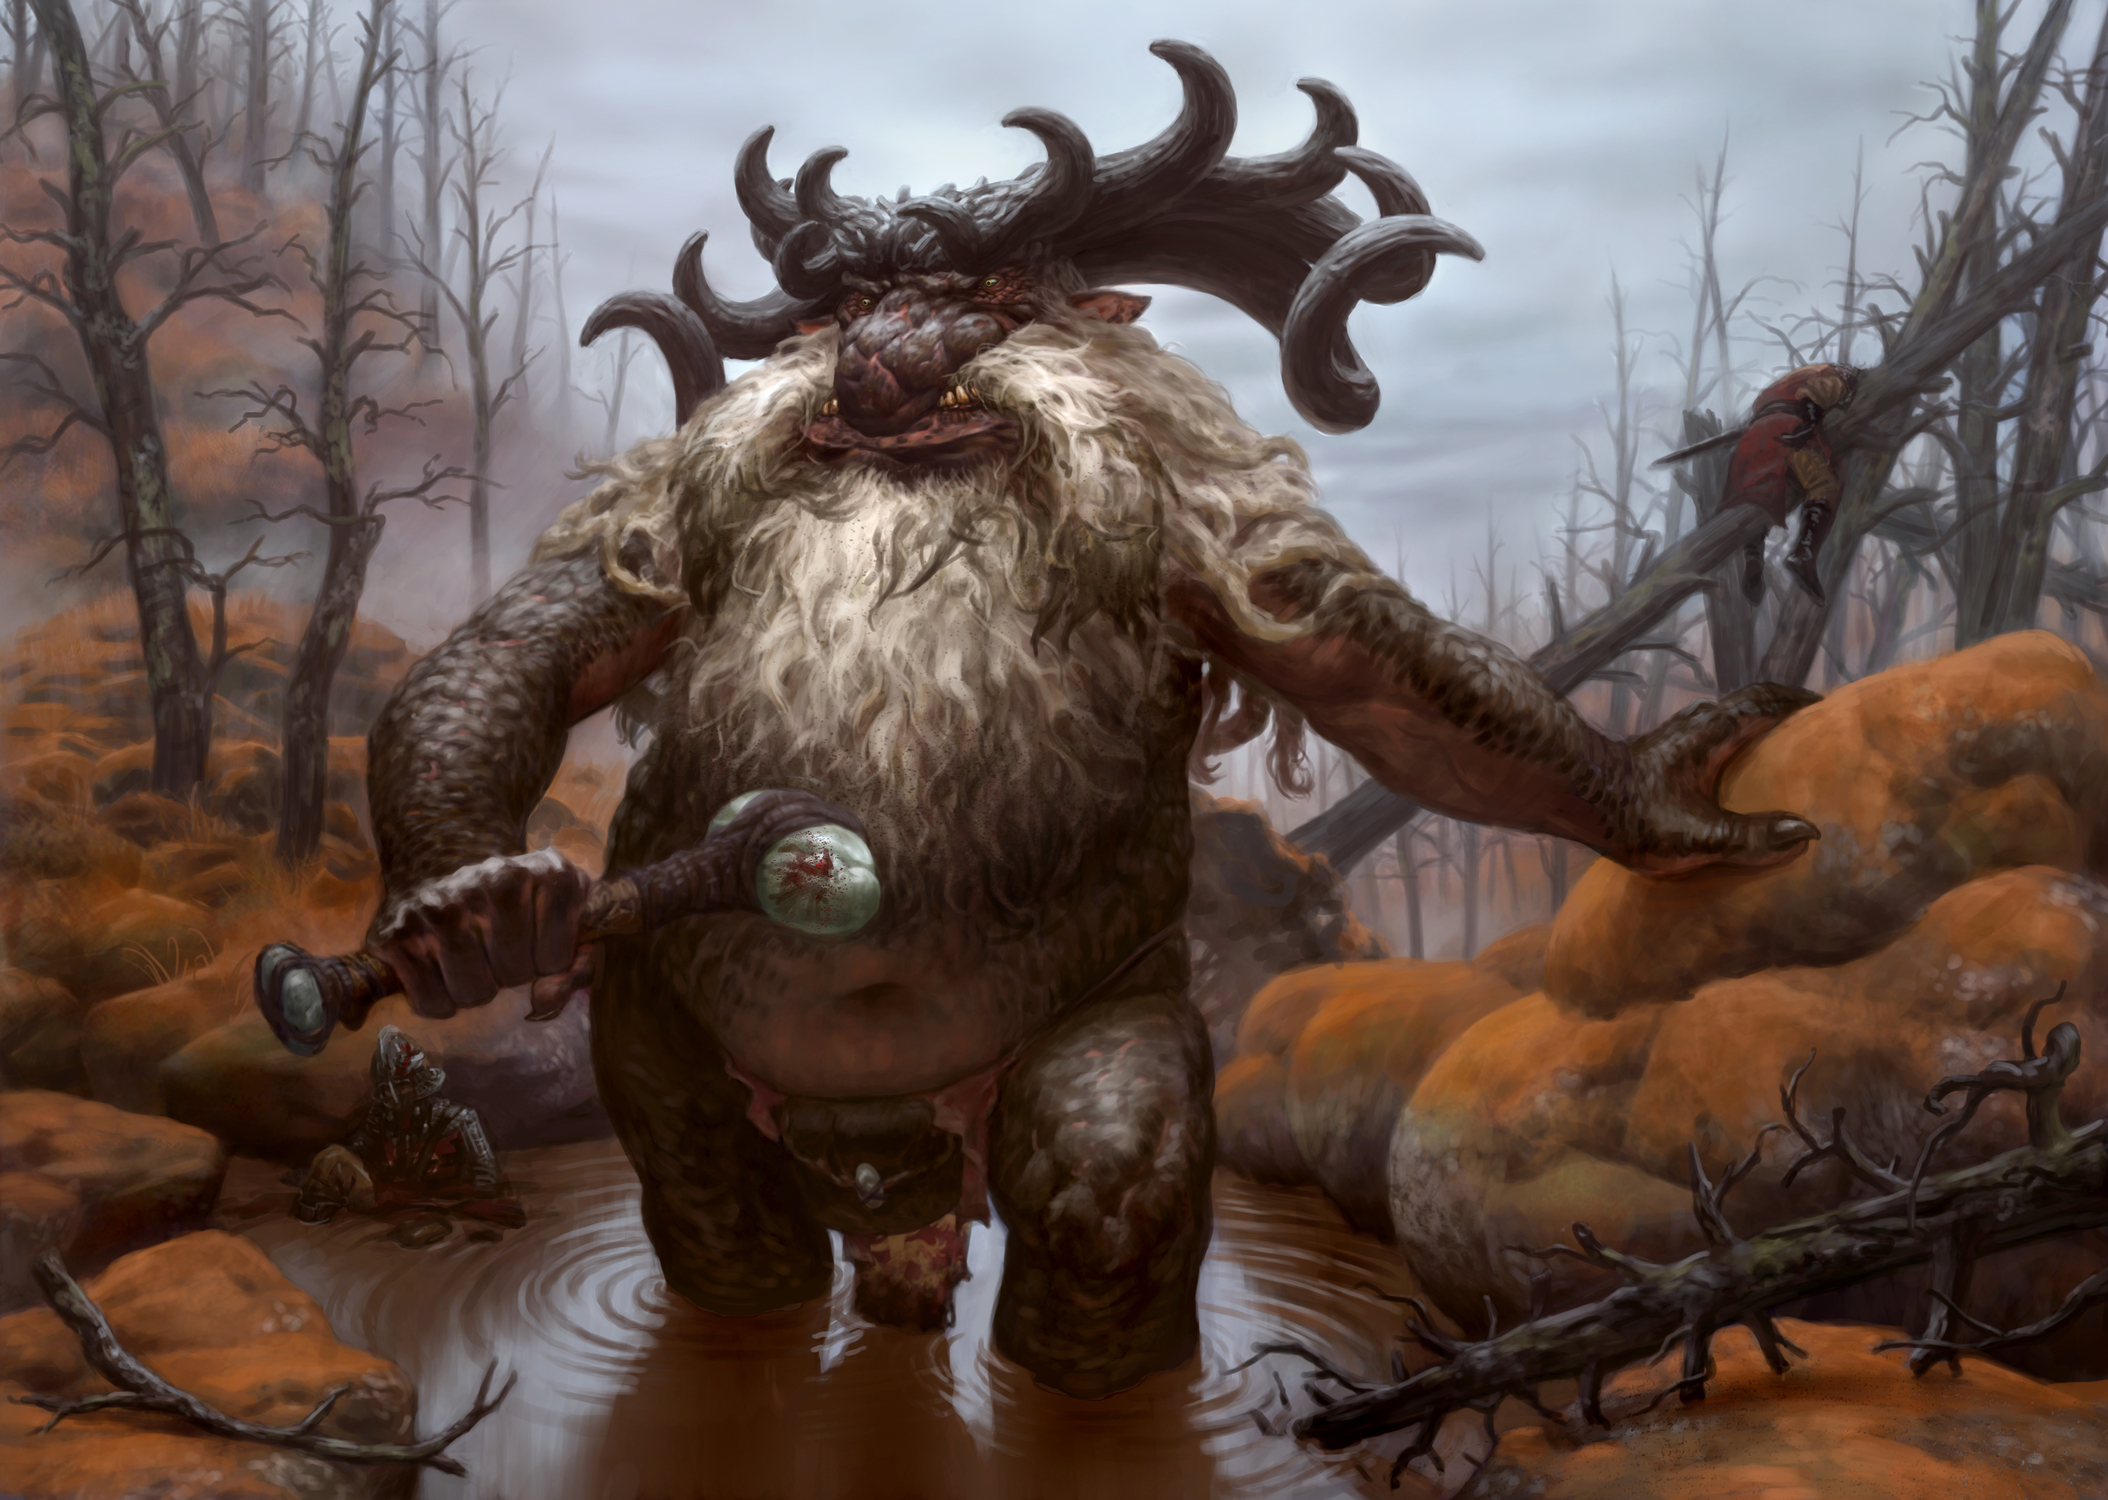 River Troll Artwork by Paul Yates